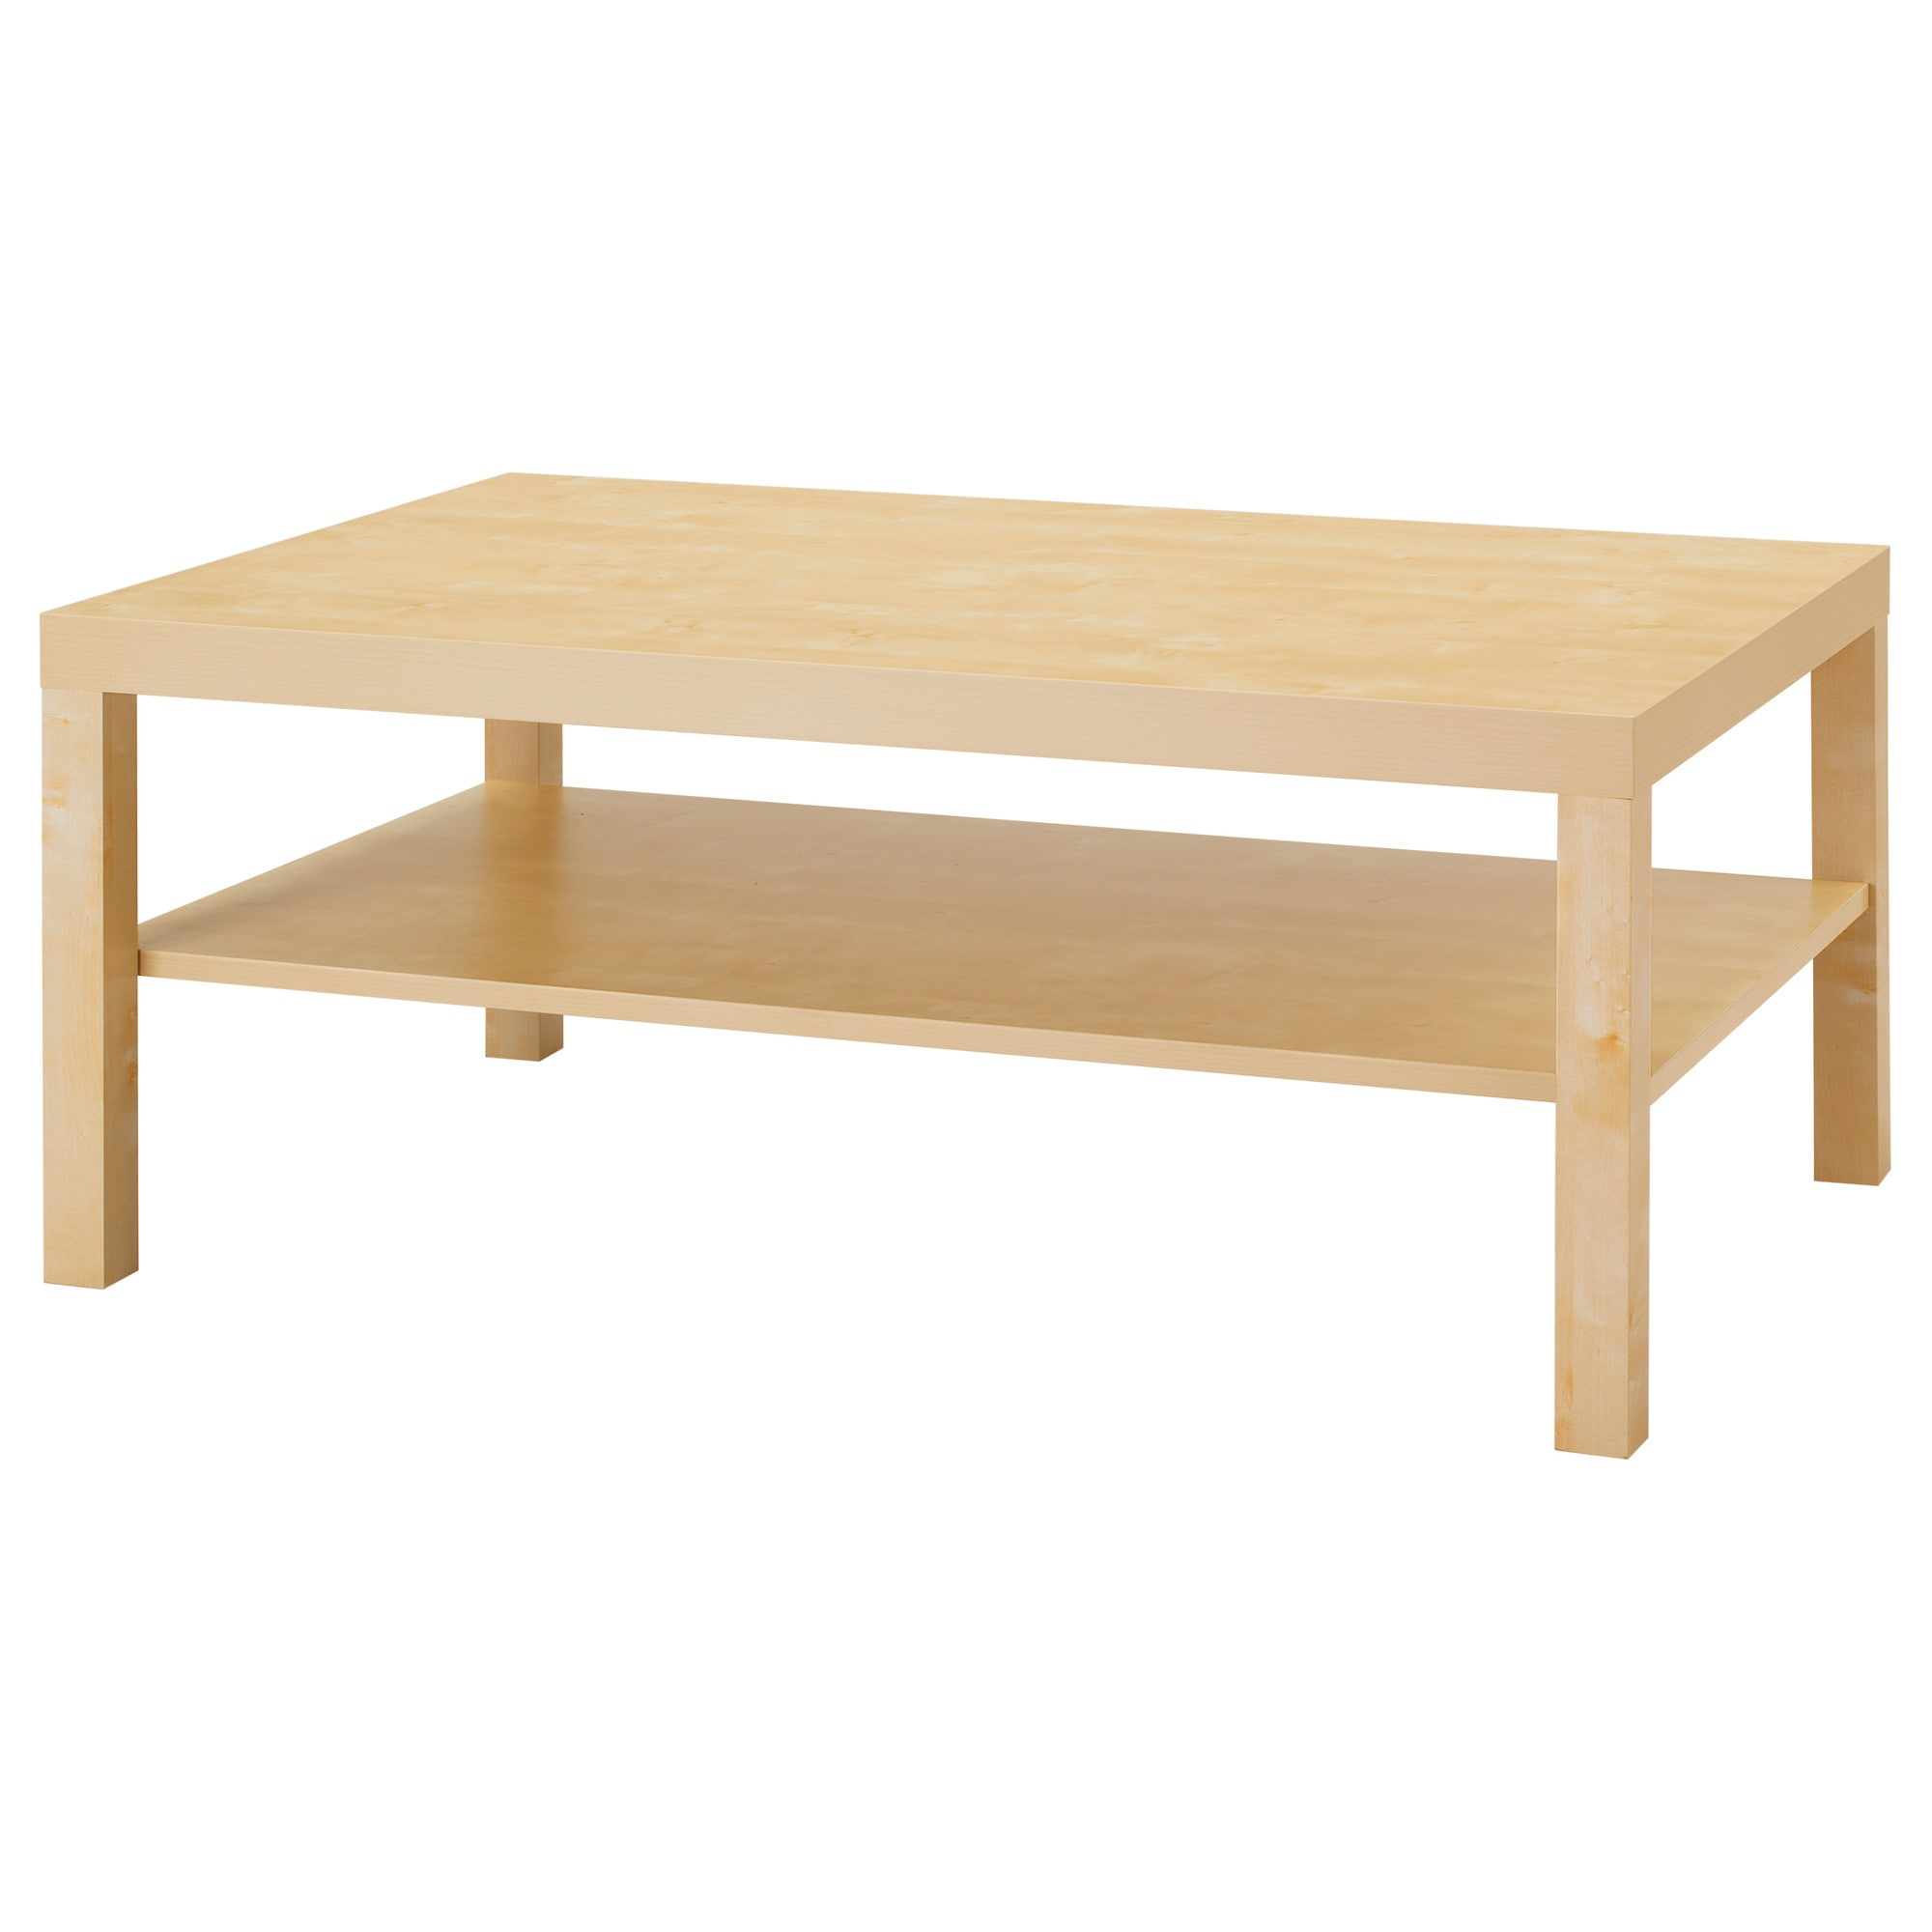 cheap side tables for living room.  LACK Coffee table birch effect IKEA